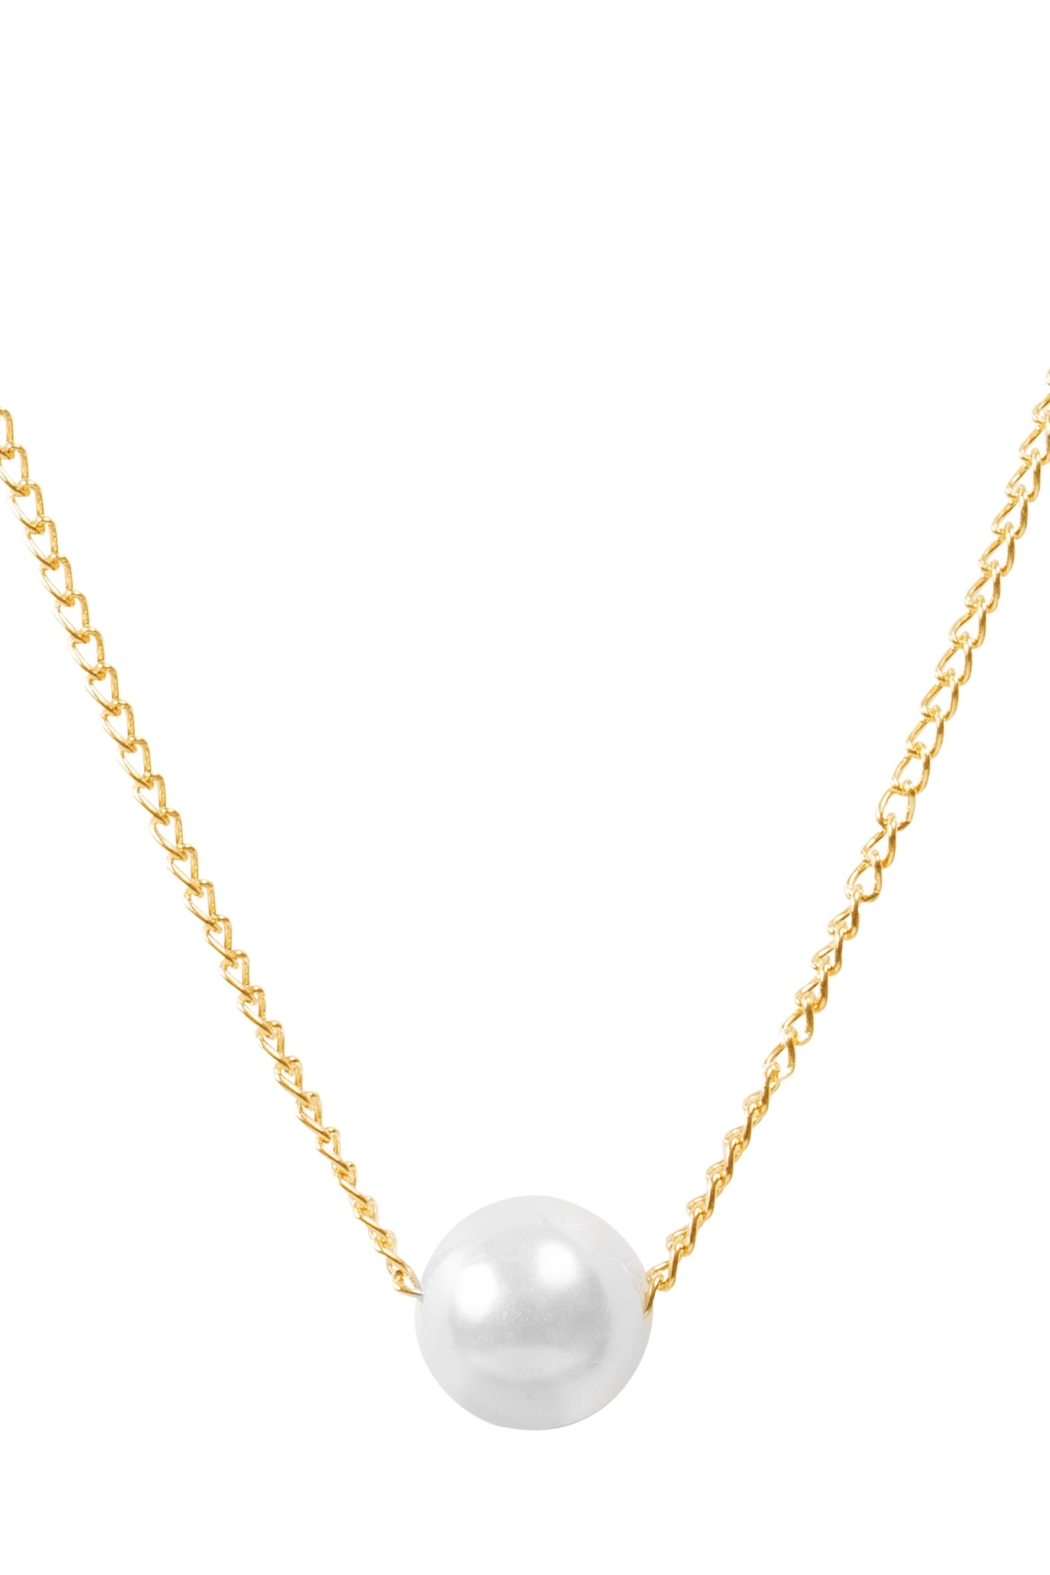 6th Borough Boutique Dainty Pearl Necklace - Front Full Image